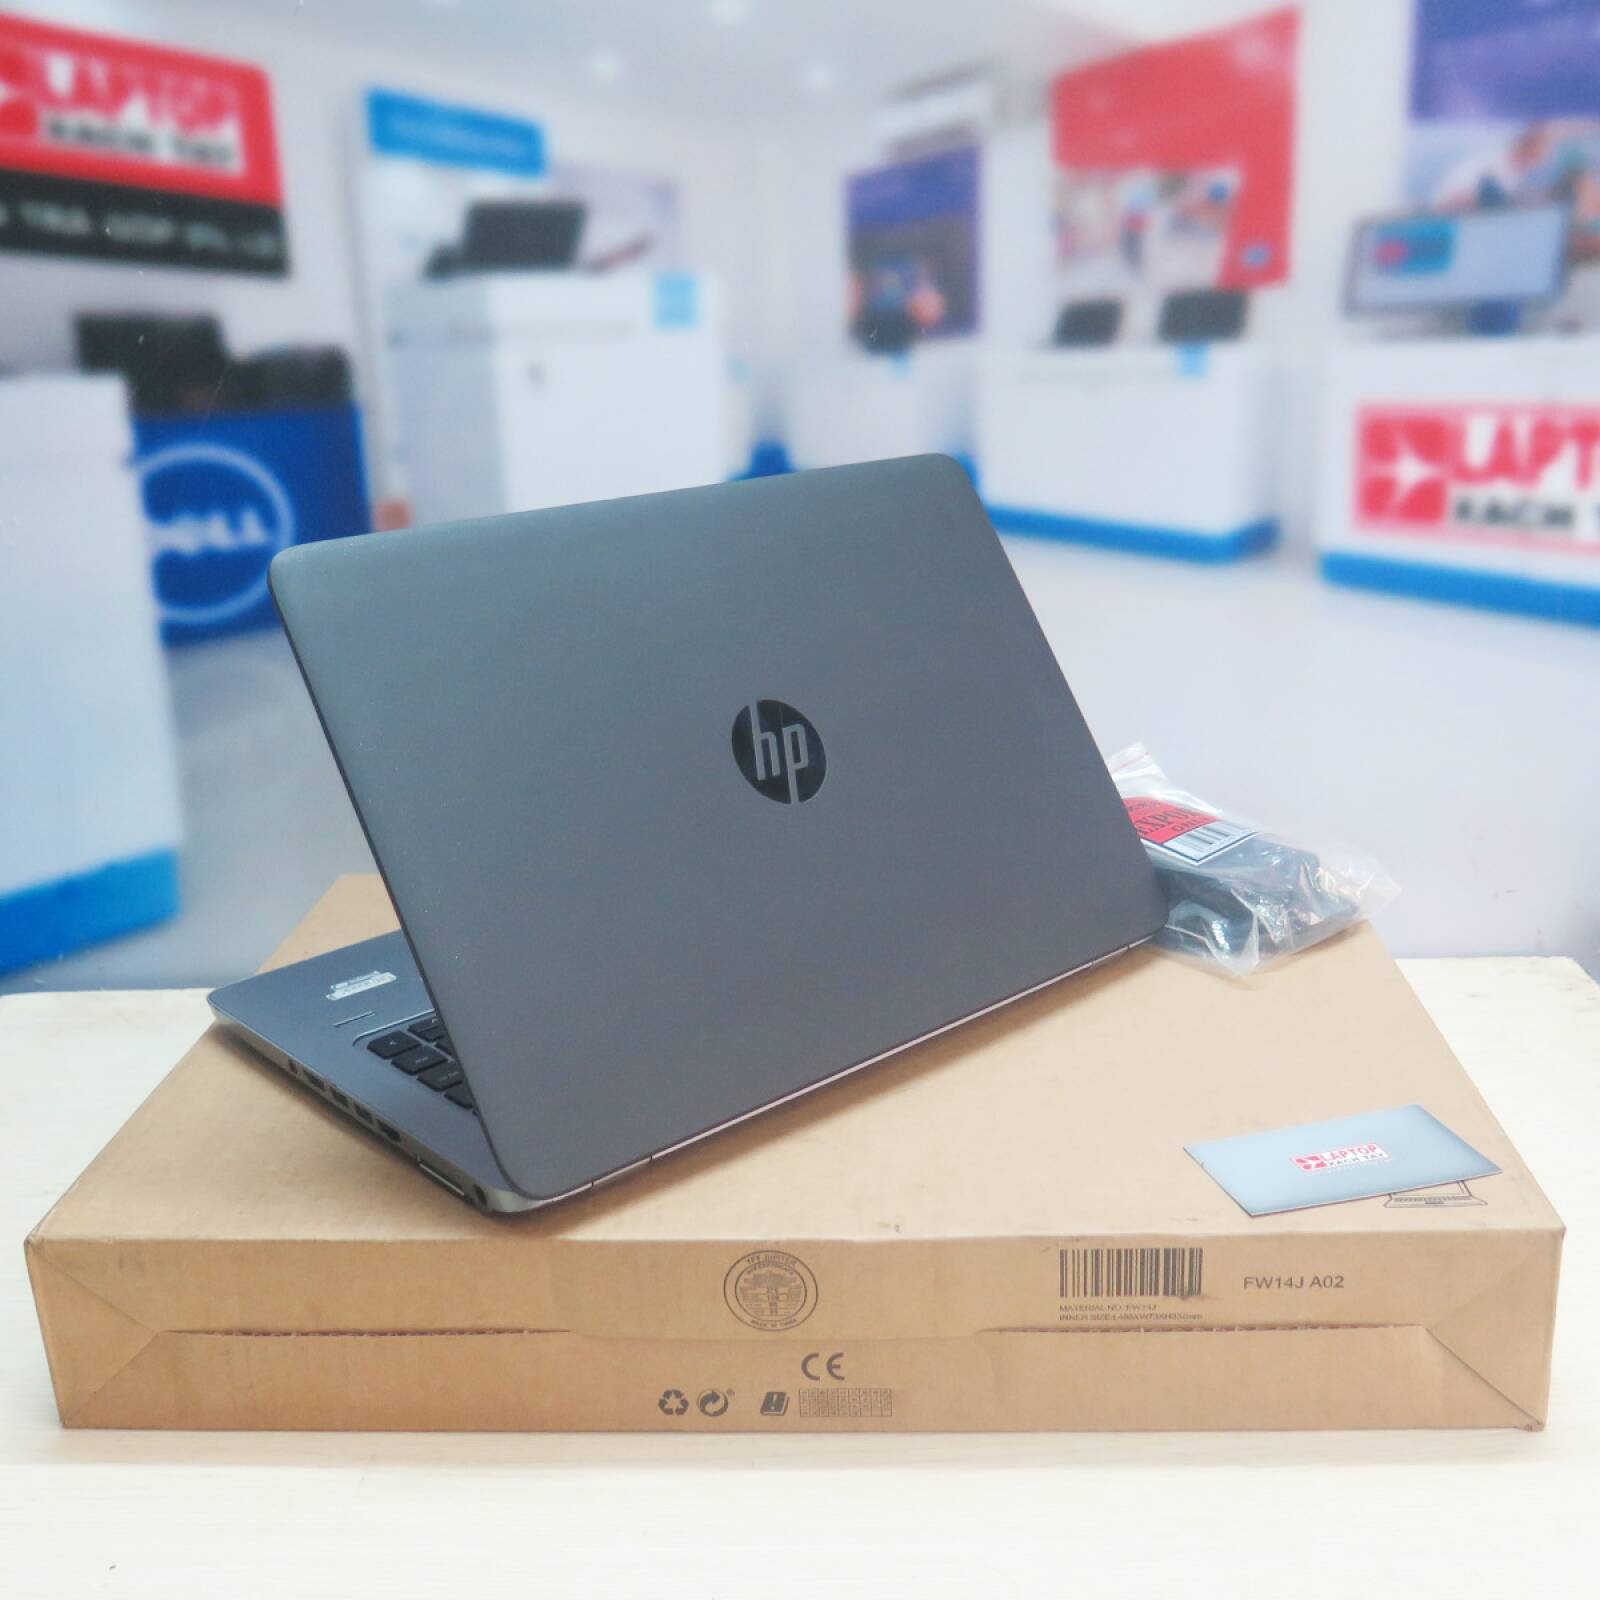 LAPTOP HP elitebook 840 G2 tại Laptopxachtayshop.com